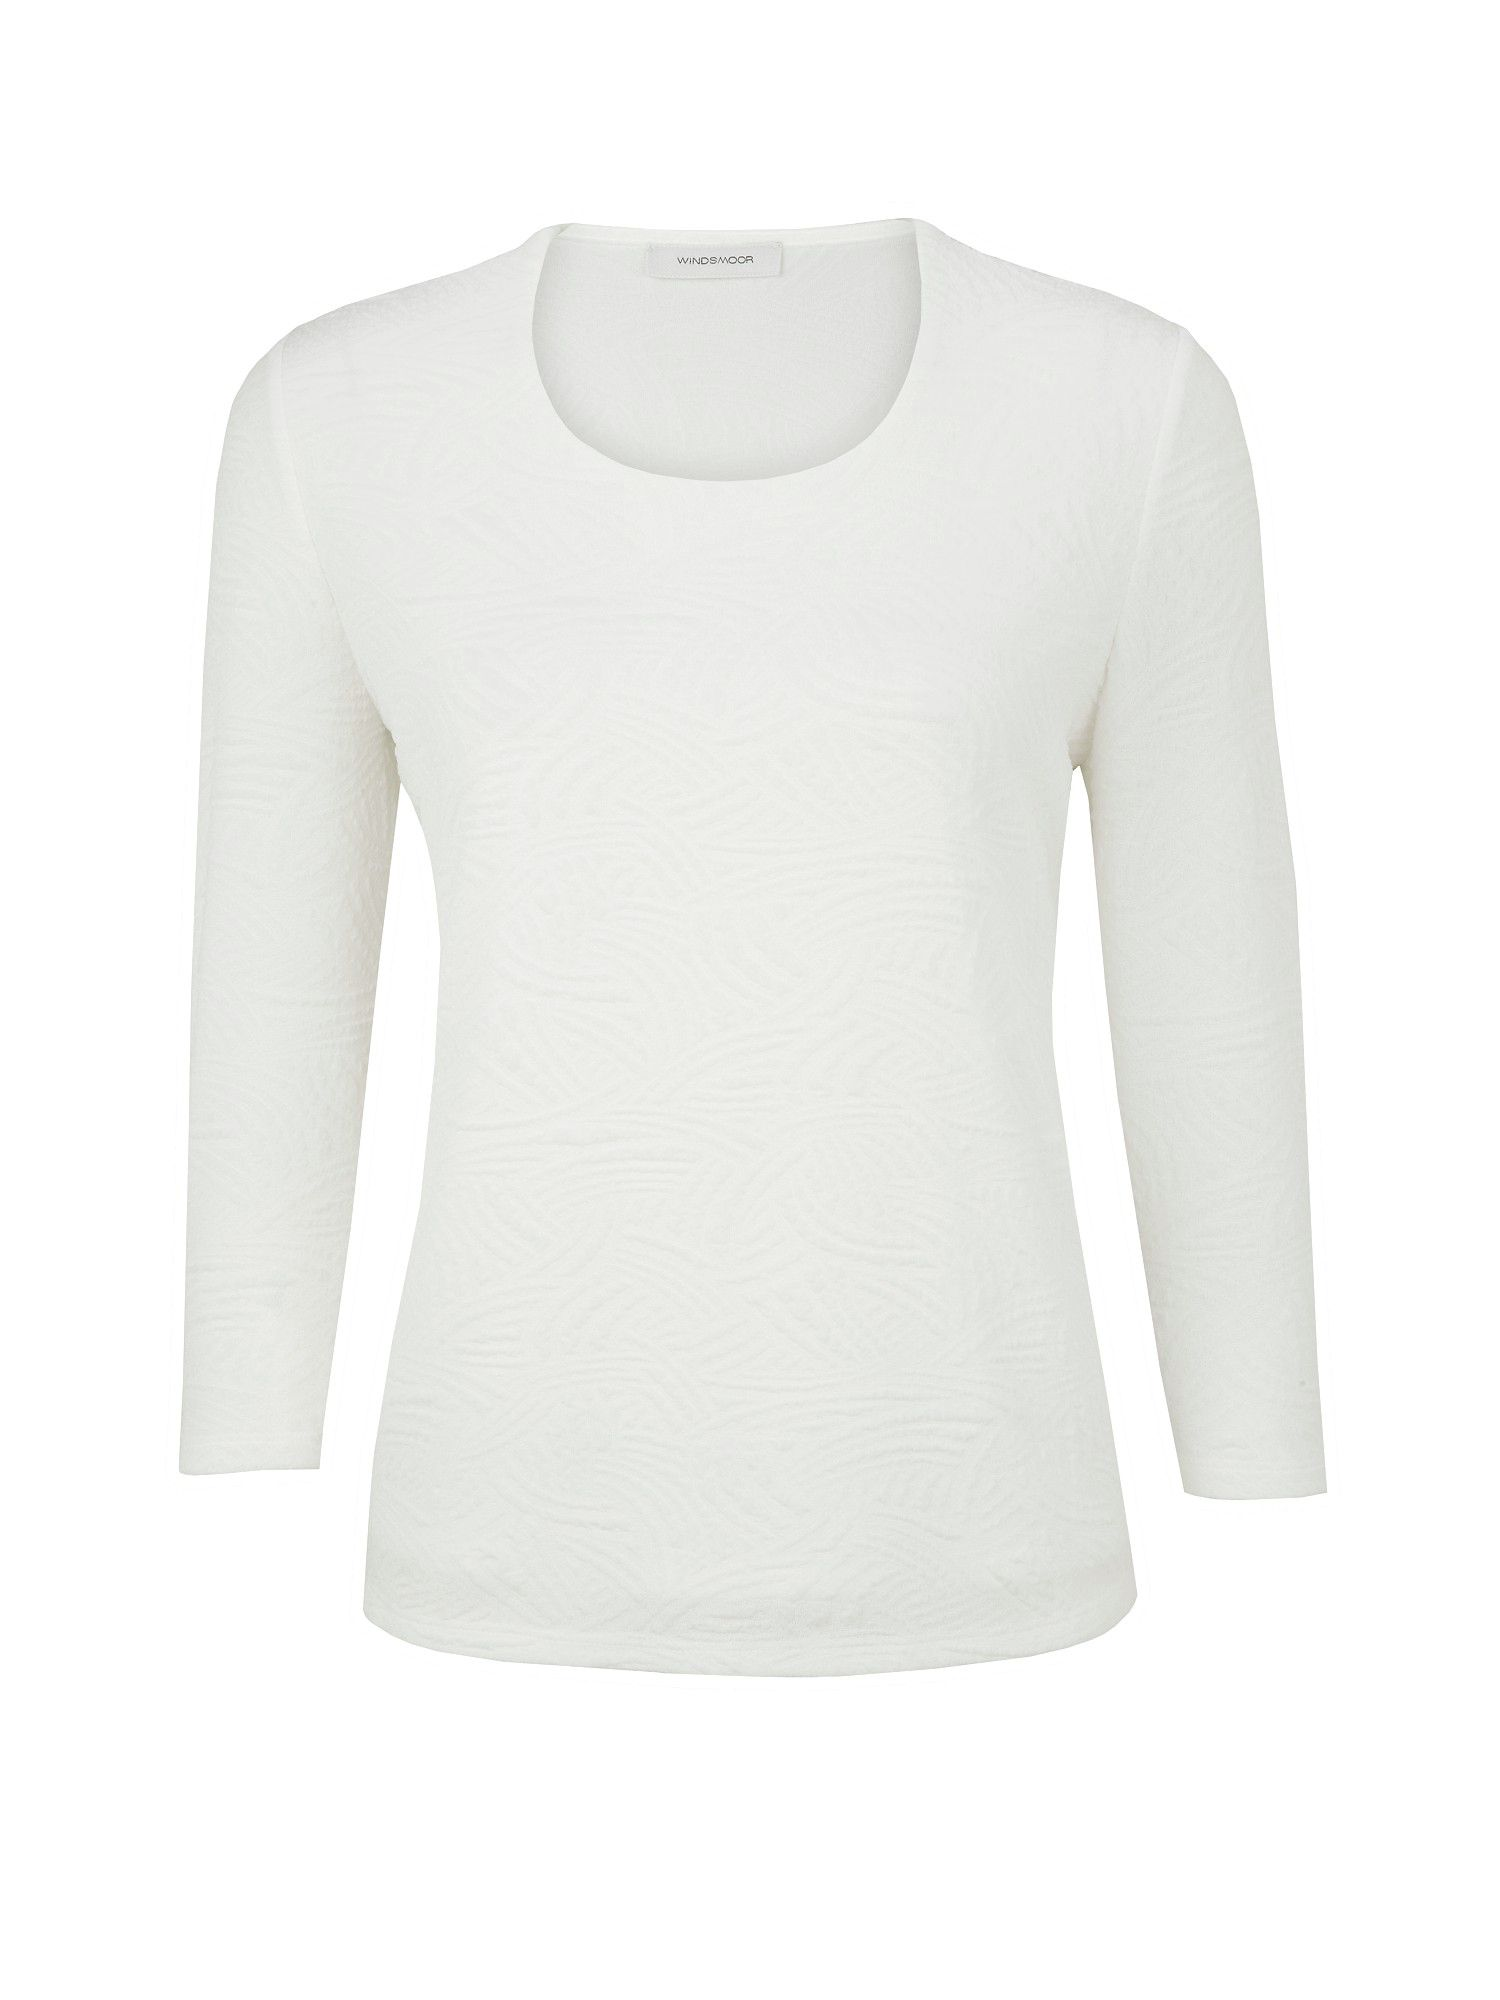 White ripple jersey top